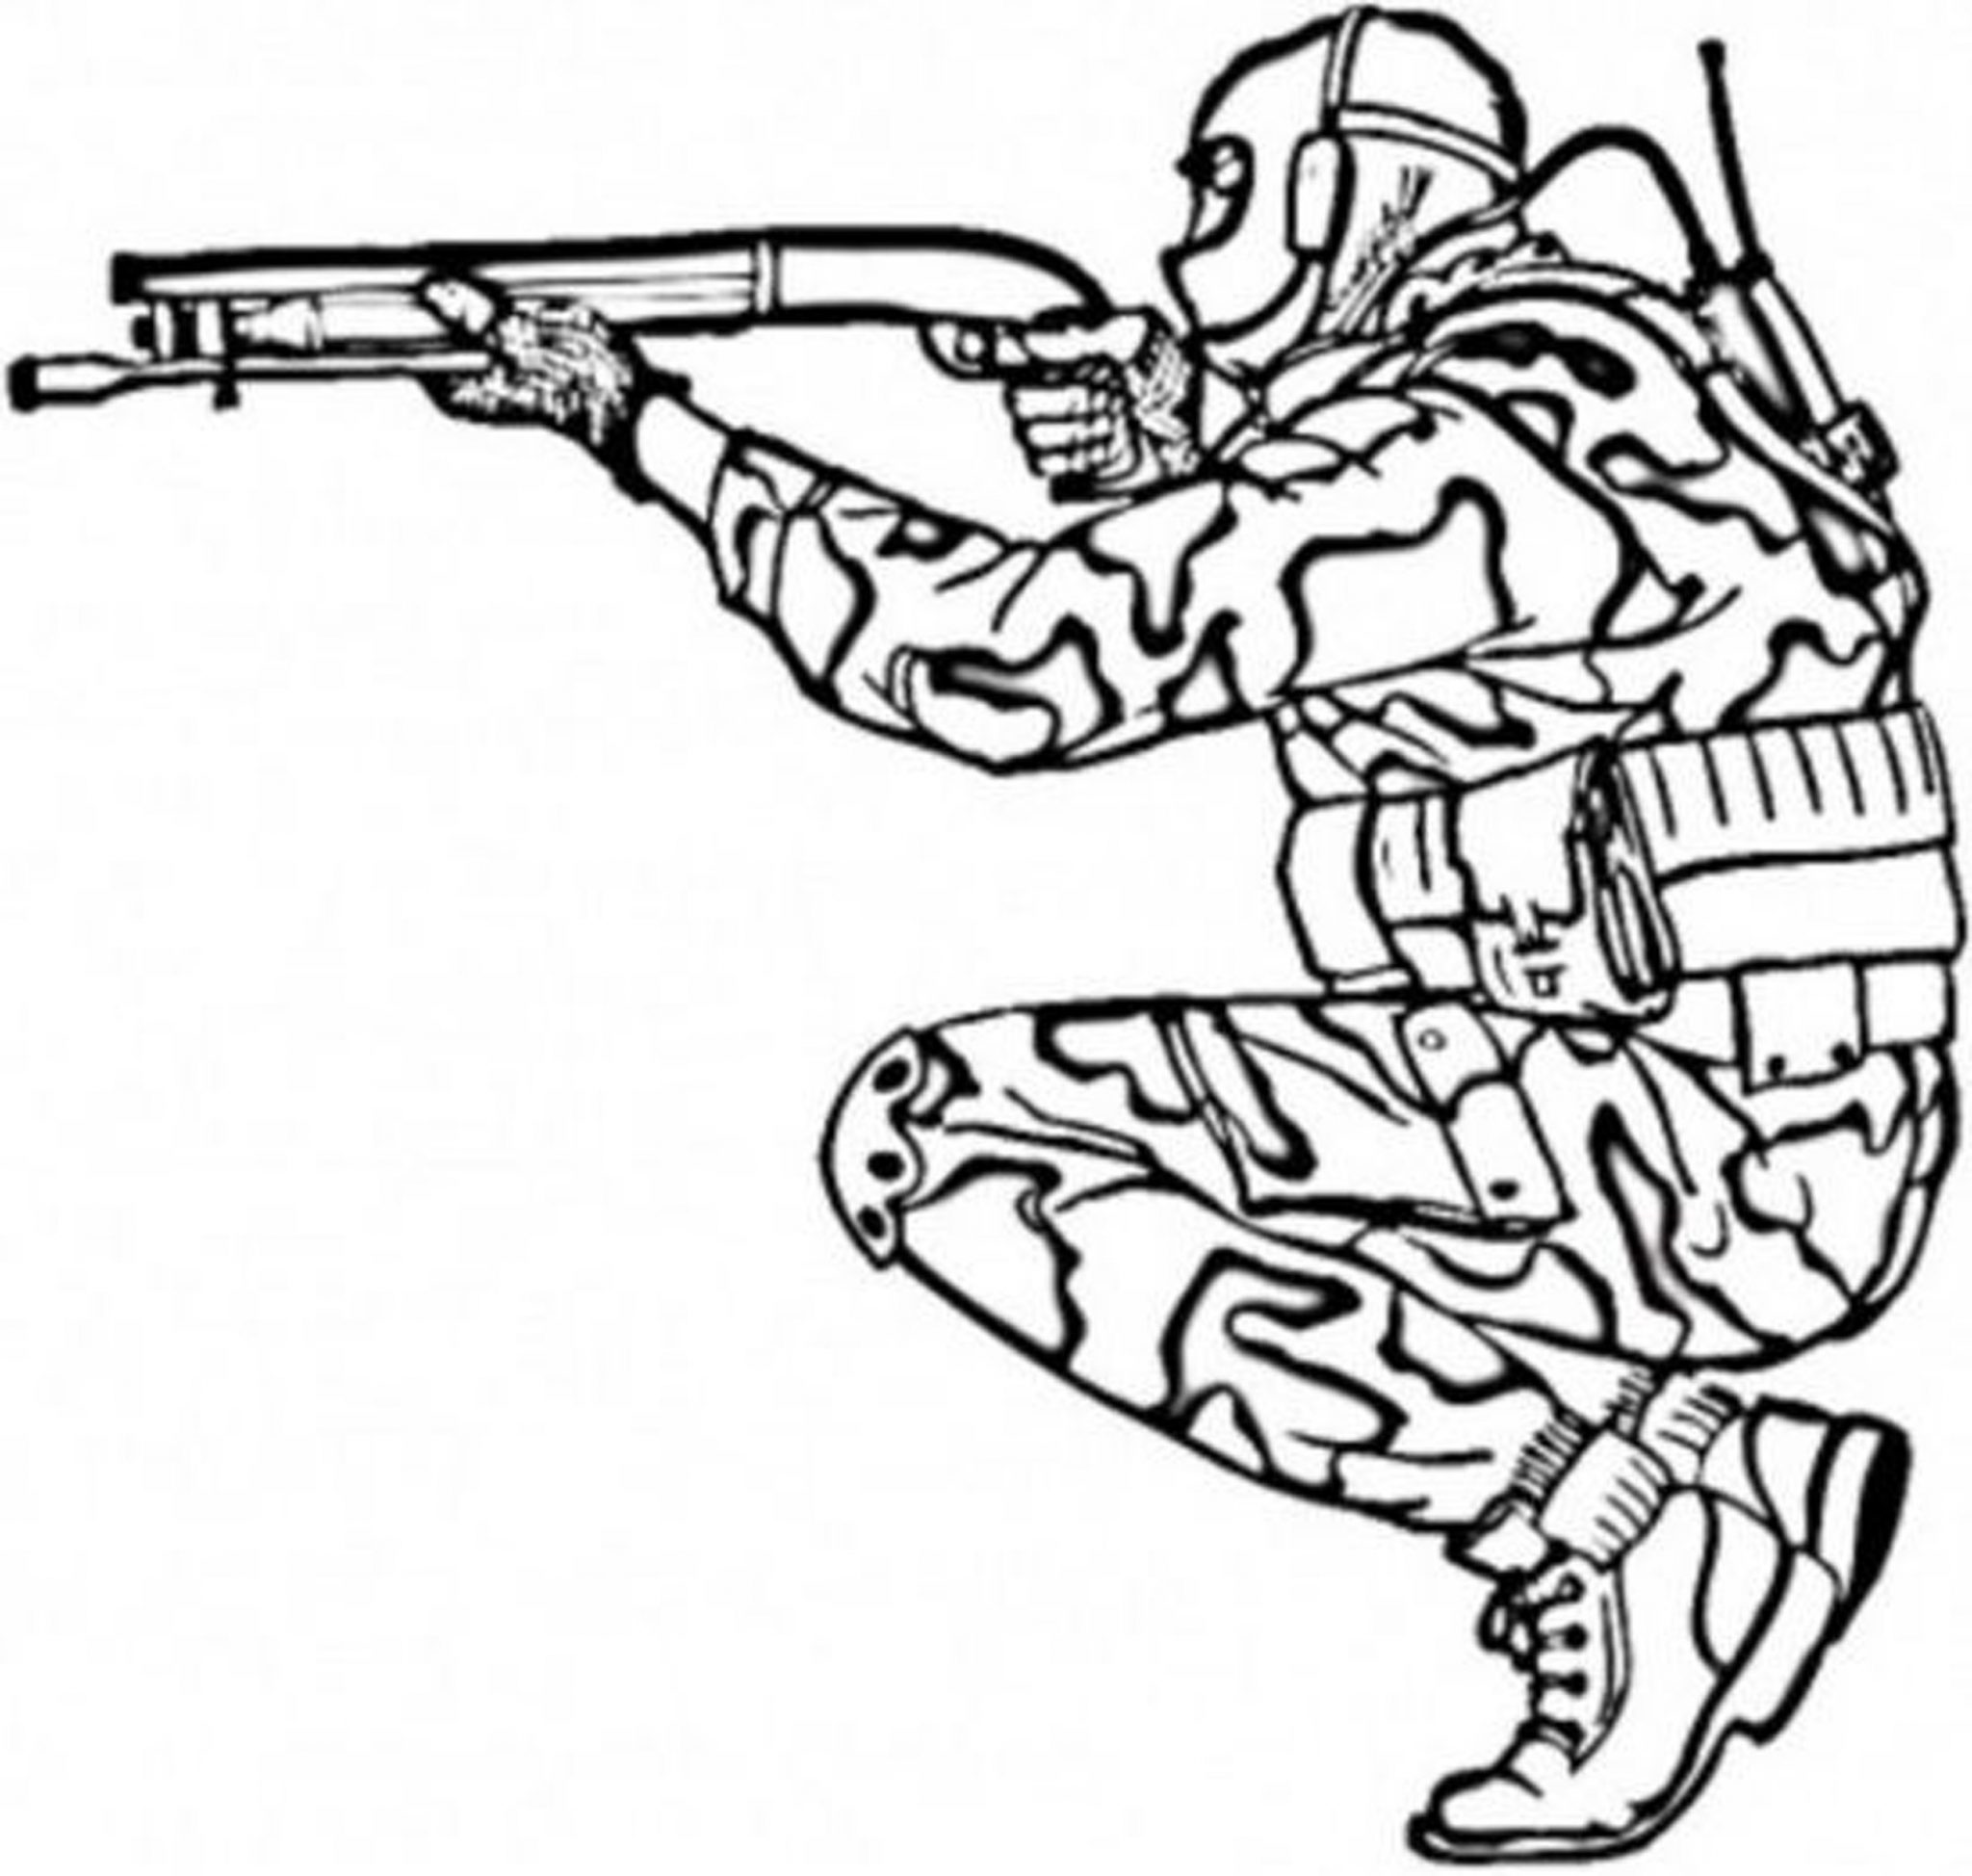 Army kid coloring pages ~ military-army-printable-coloring-pages-for-boys ...